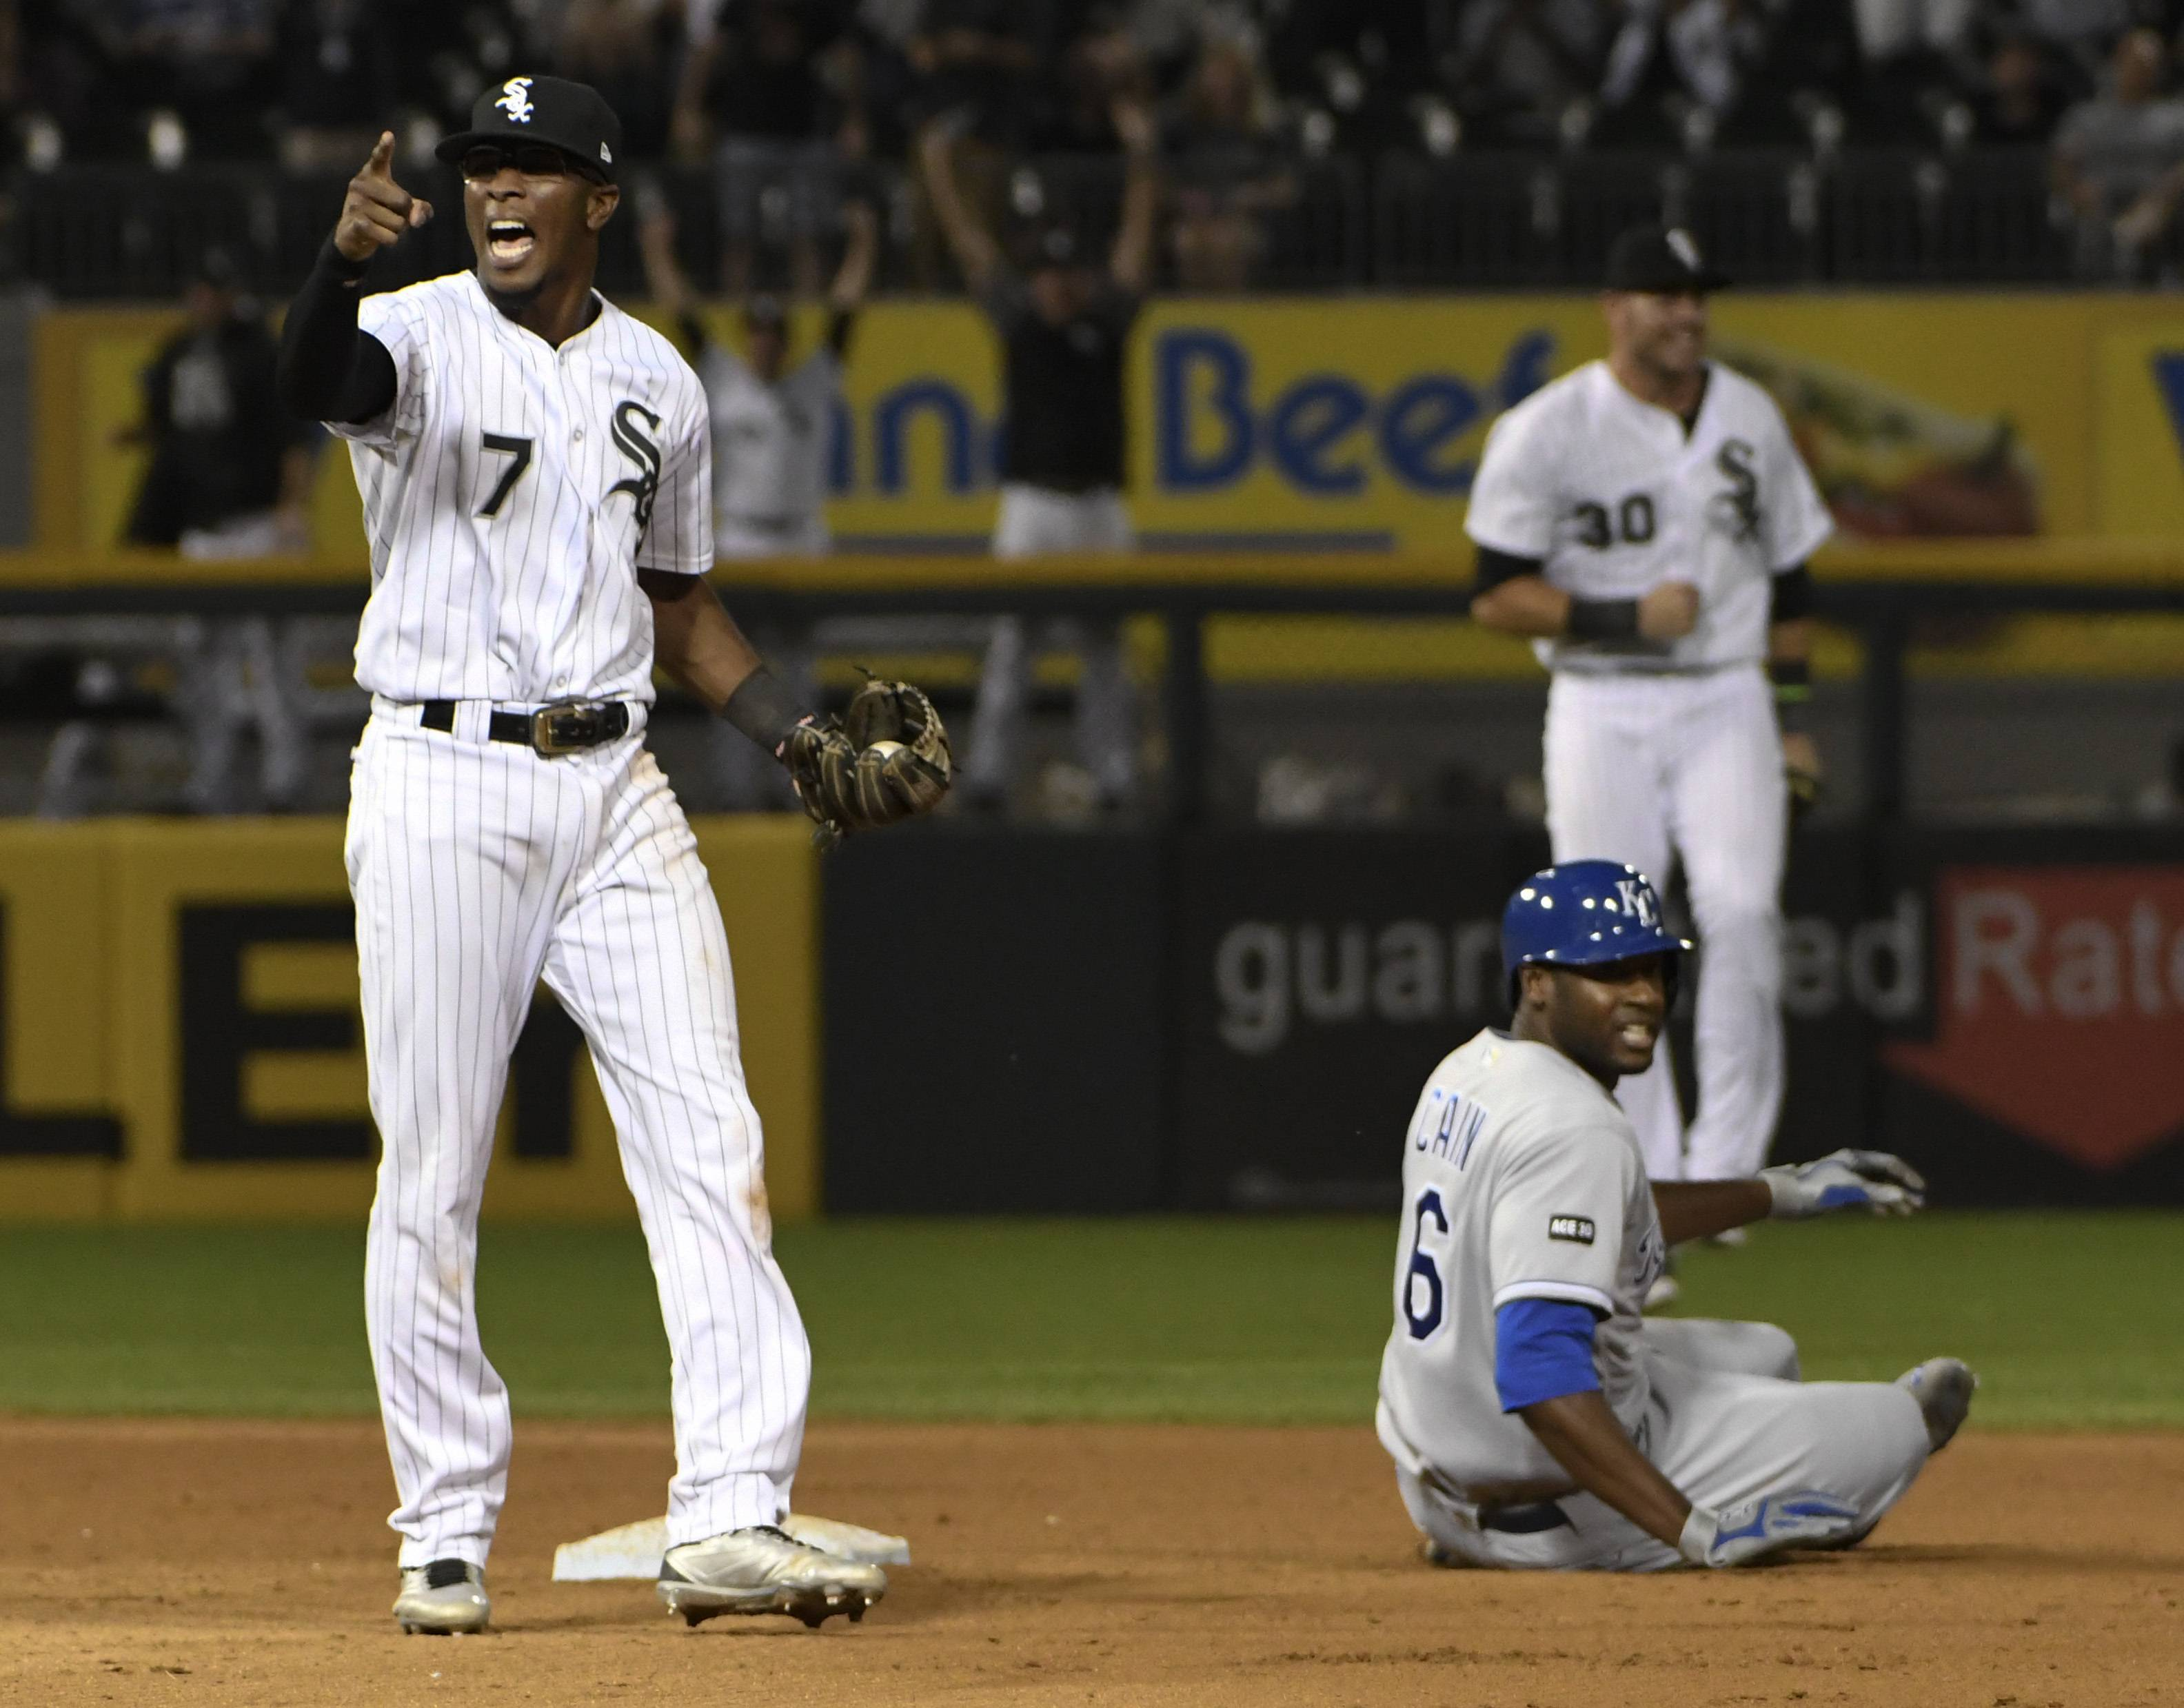 Chicago White Sox shortstop Tim Anderson (7) reacts after tagging out Kansas City Royals' Lorenzo Cain (6) at second base for the final out of a baseball game, Friday, Sept. 22, 2017, in Chicago. The White Sox defeated the Royals 7-6.